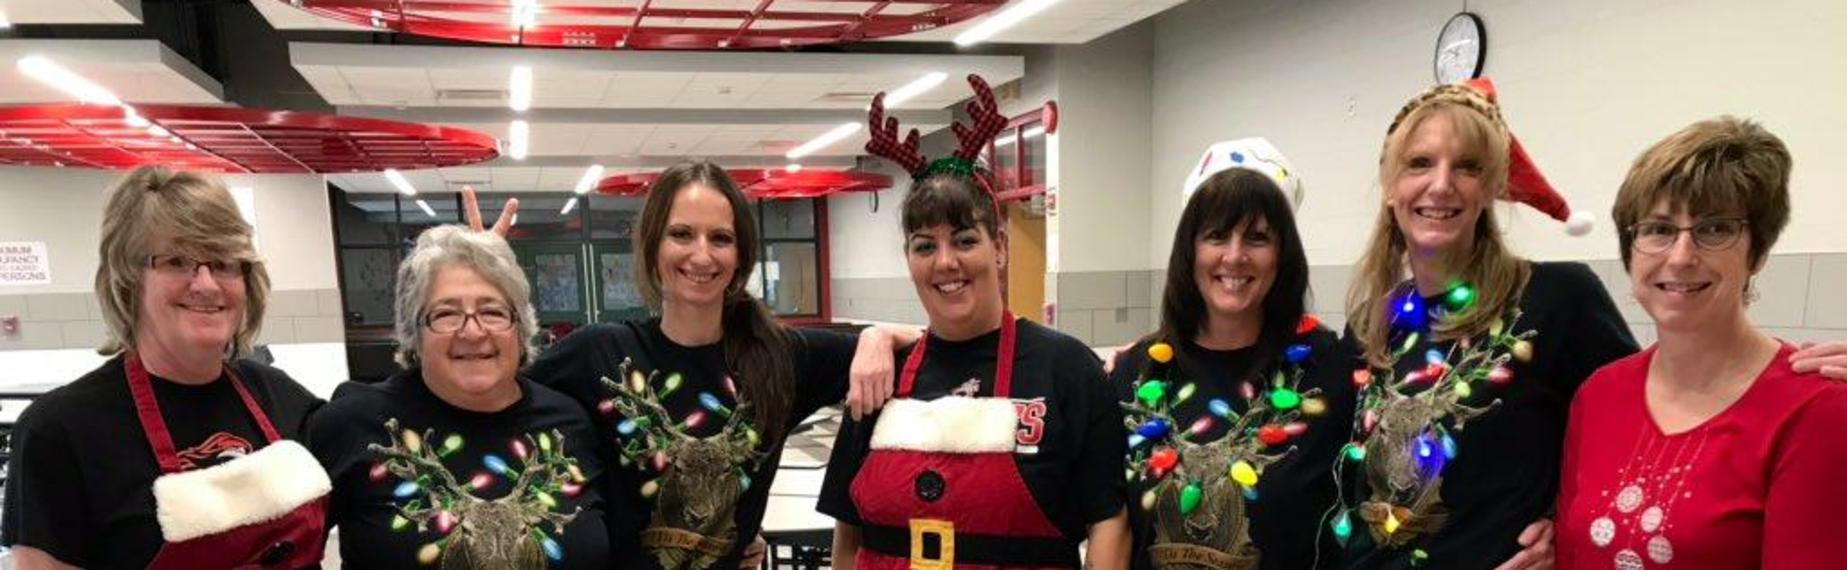 Cafeteria Staff dressed for Christmas